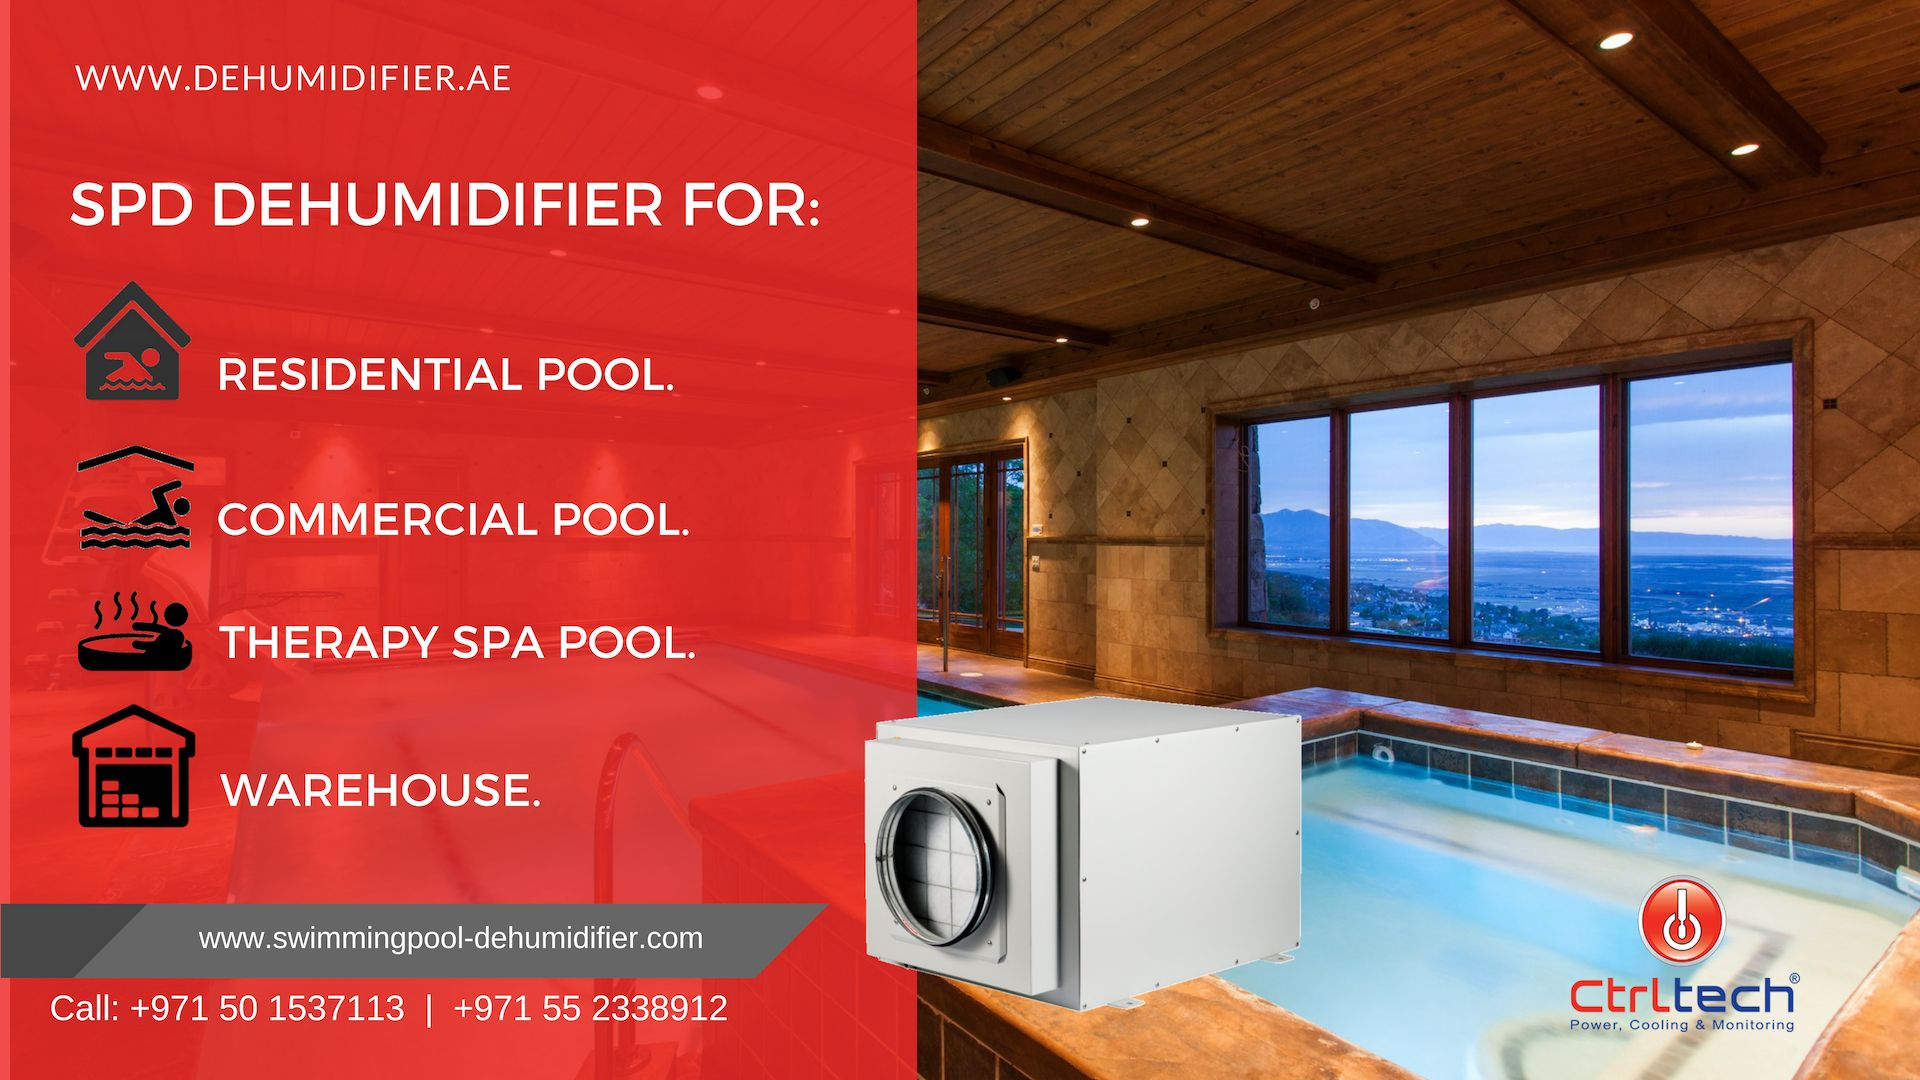 Spd Series Indoor Pool Room Dehumidifier Can Be Used For Small Residential Pools Large Commercial Pool Such As Pool Residential Pool Therapy Pools Indoor Pool